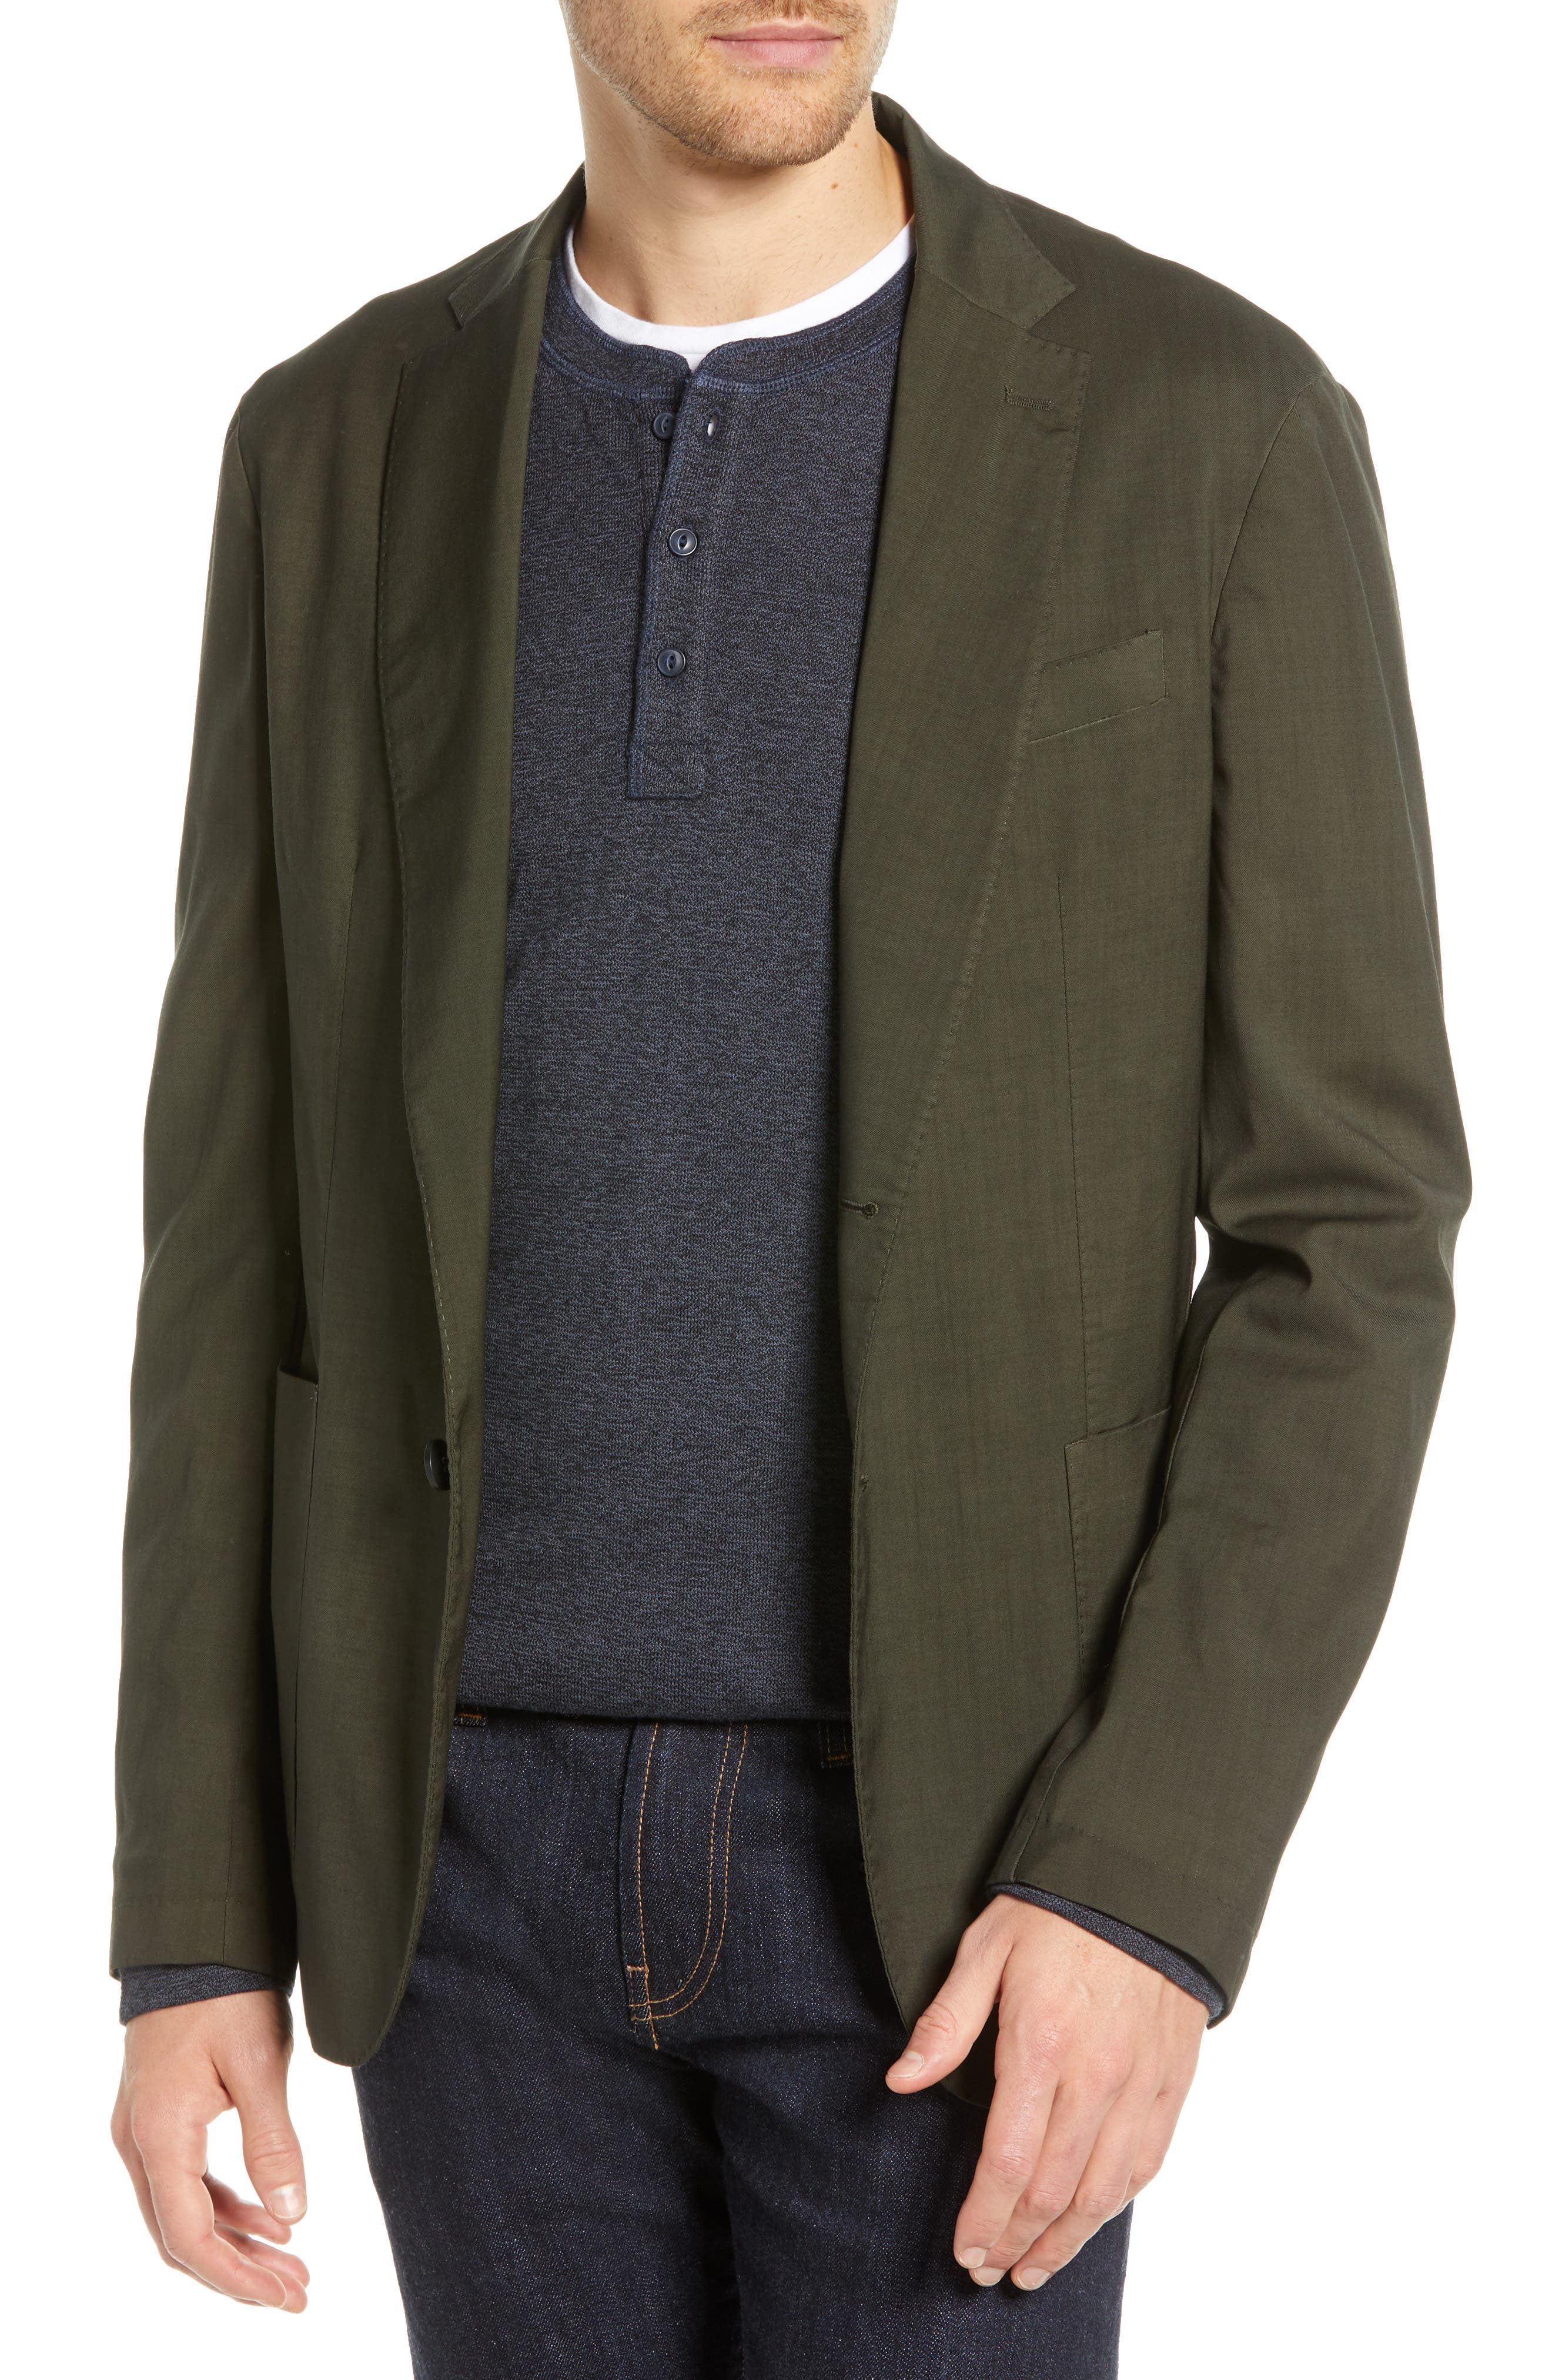 Extra Trim Fit Garment Dyed Wool Sport Coat, Main, color, OLIVE